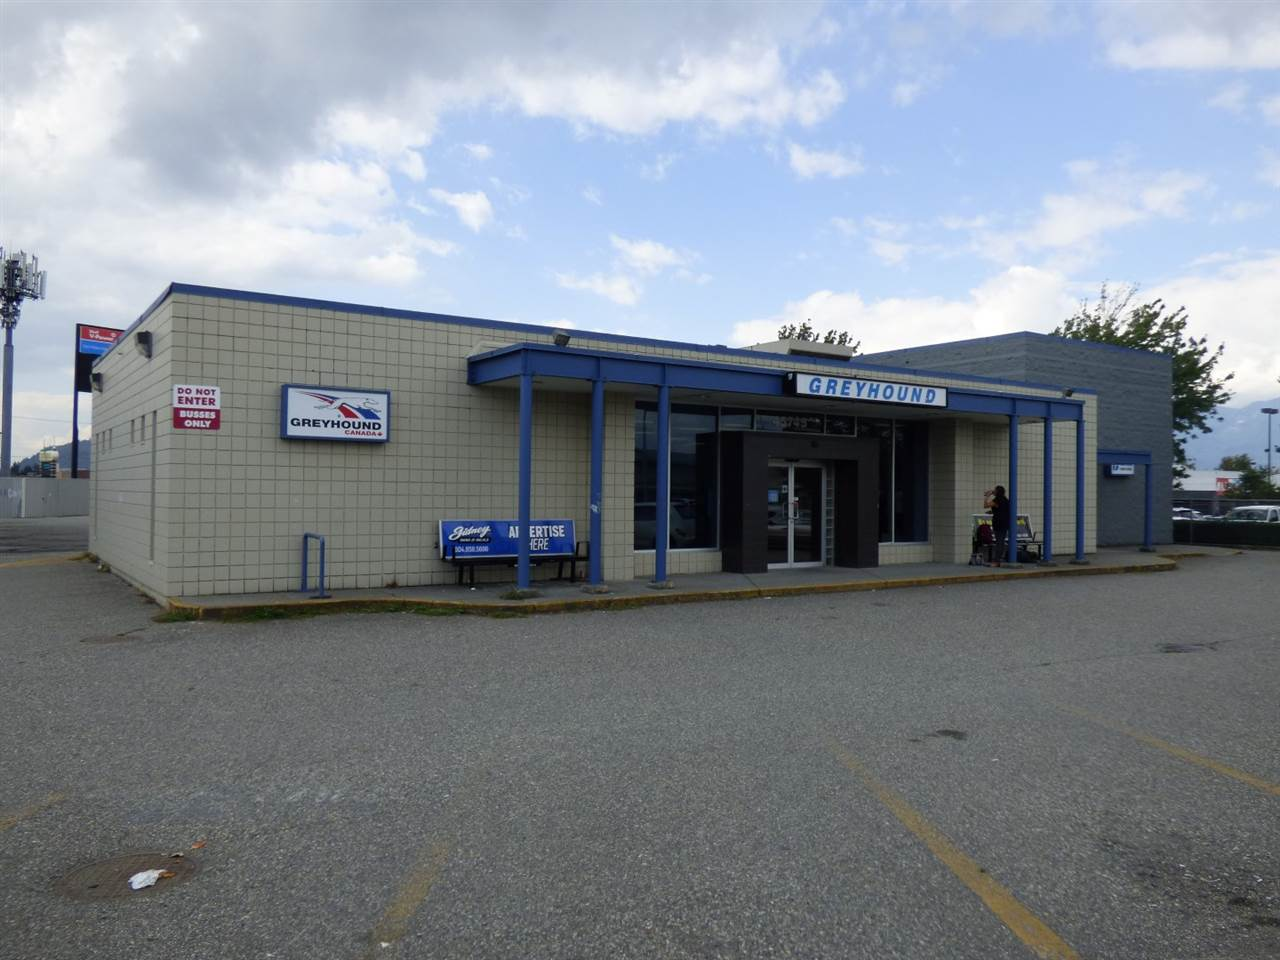 High profile location, outstanding exposure with easy access for large trucks. Both a retail display and warehouse/distribution area, 3 overhead grade doors, plenty of onsite parking. Adjacent to Great Canadian Superstore and Marks (clothing outlet) and across the street from a new Starbucks and Kal Tire. This is a main shopping area new the 401 freeway on a primary collector roadway (Luckakuck Way). Join with other national brands and international brands at this superior business location.